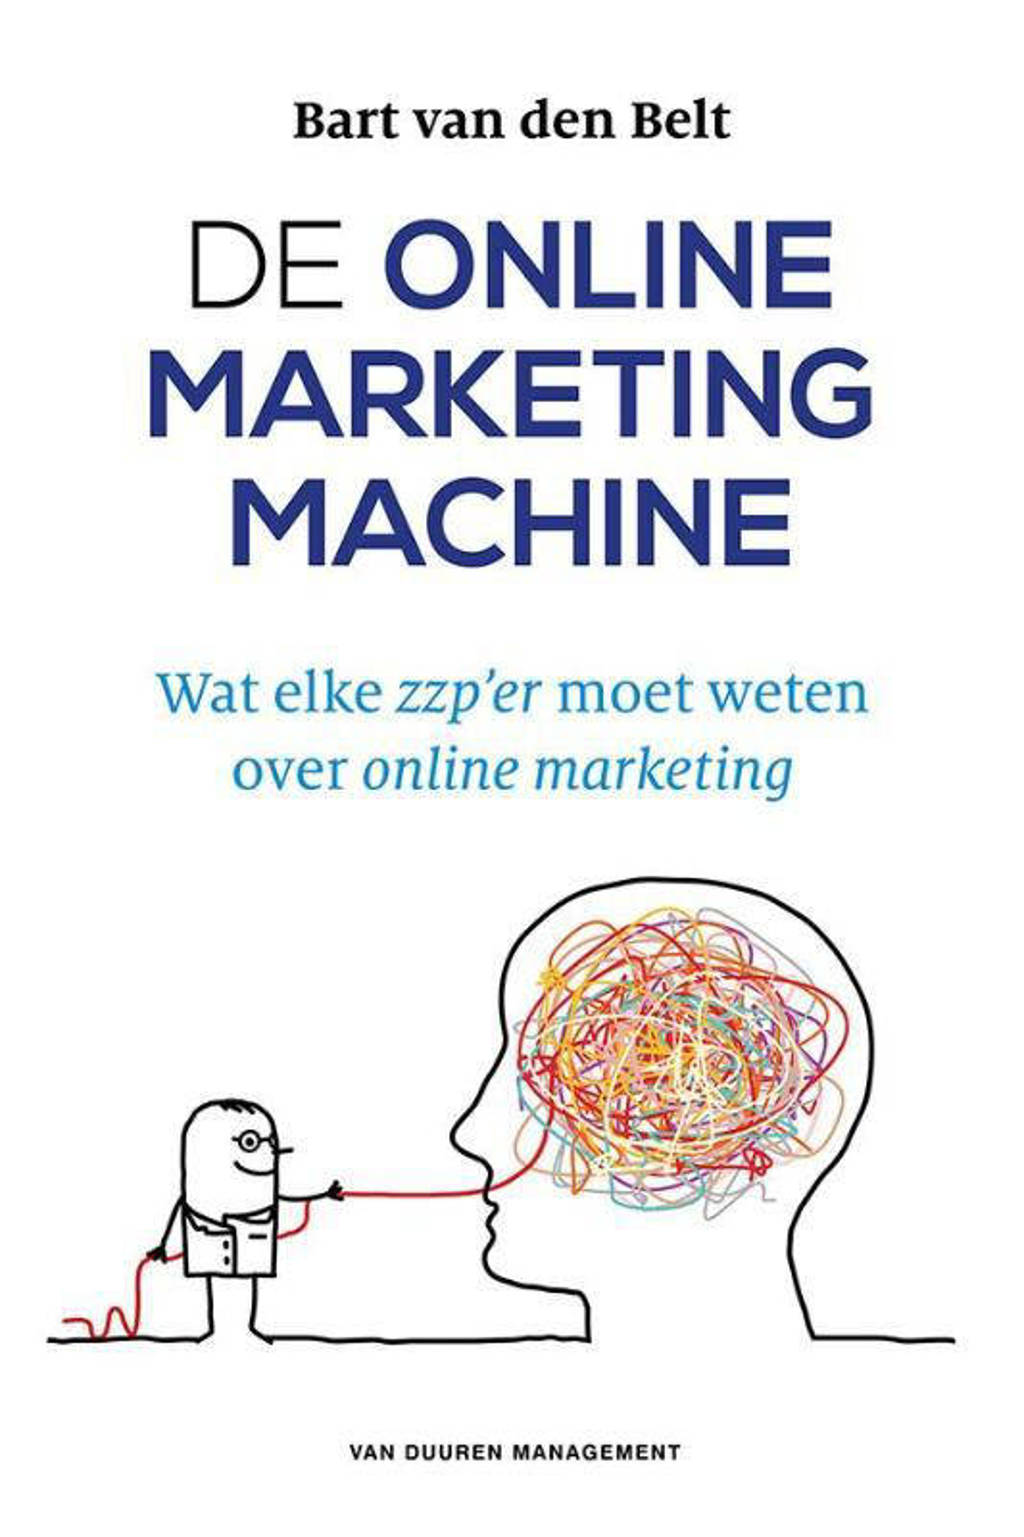 De online marketingmachine - Bart van den Belt